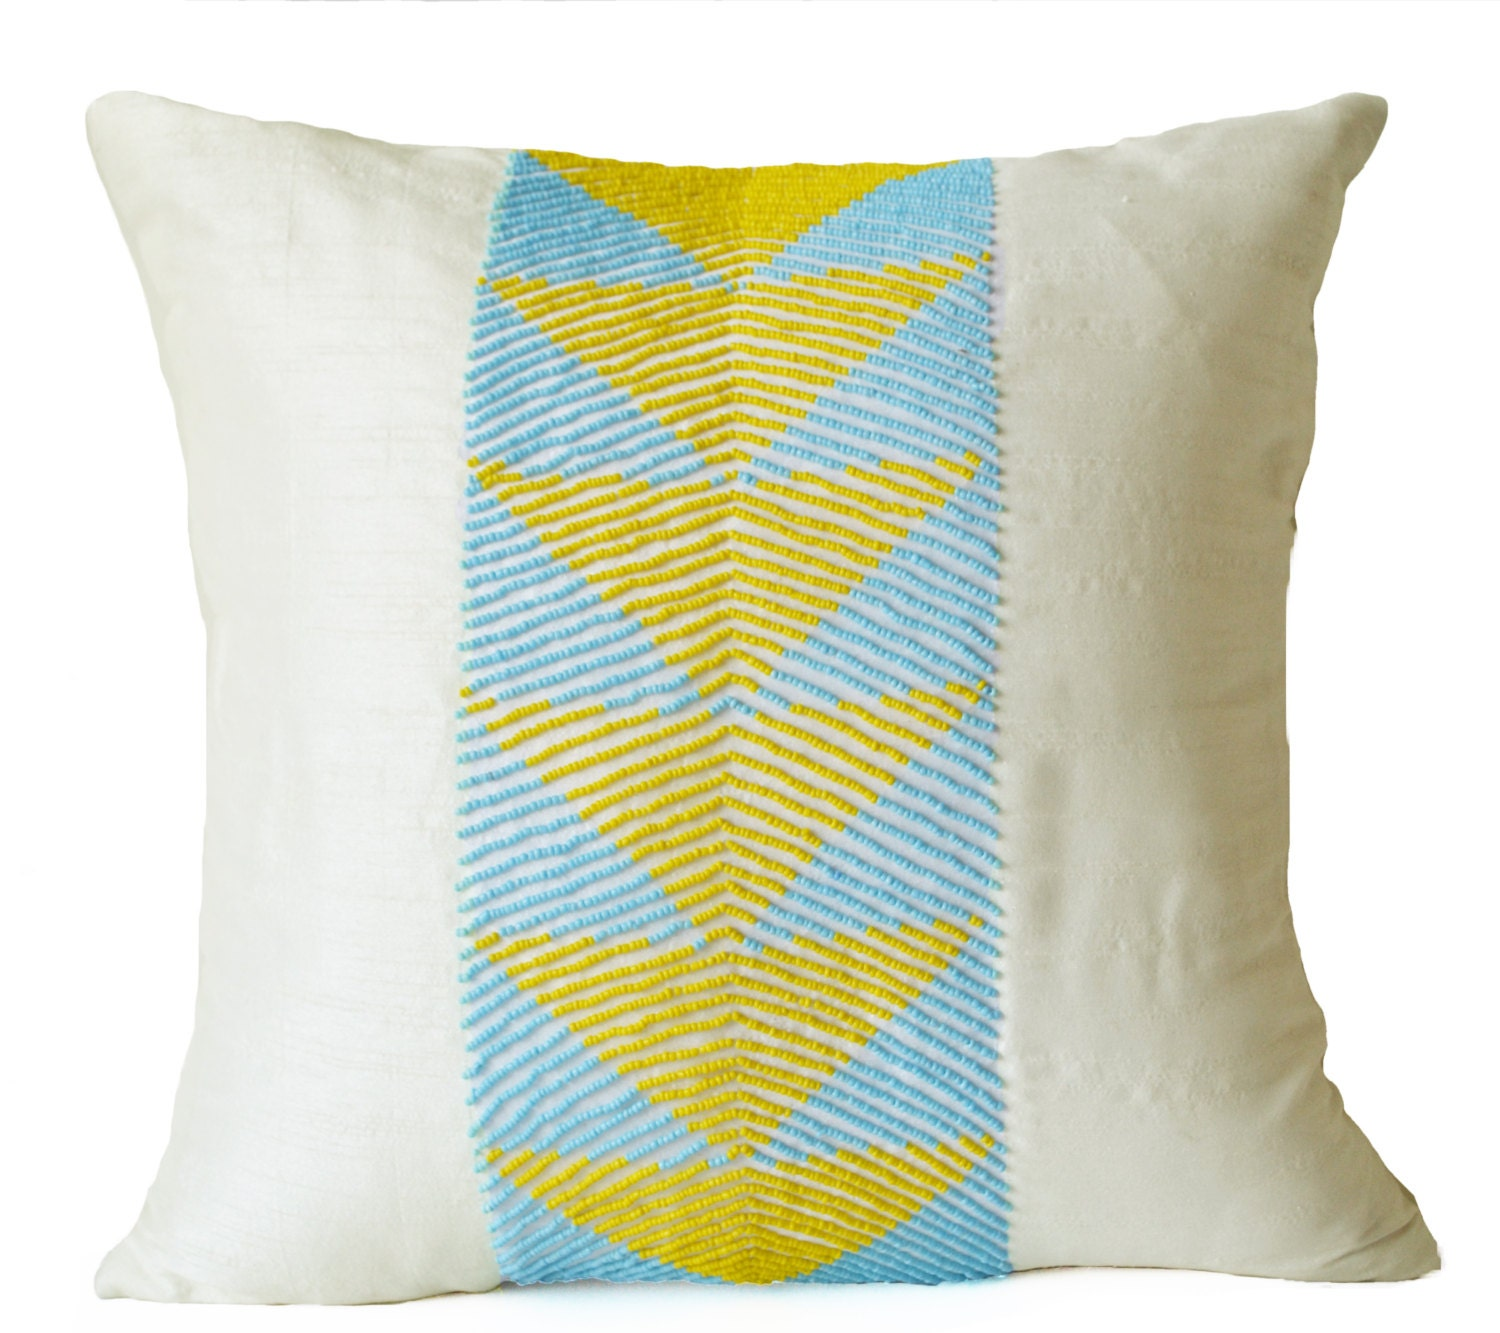 Blue Geometric Throw Pillows : Decorative Pillow Covers Throw Pillows Yellow Blue Geometric